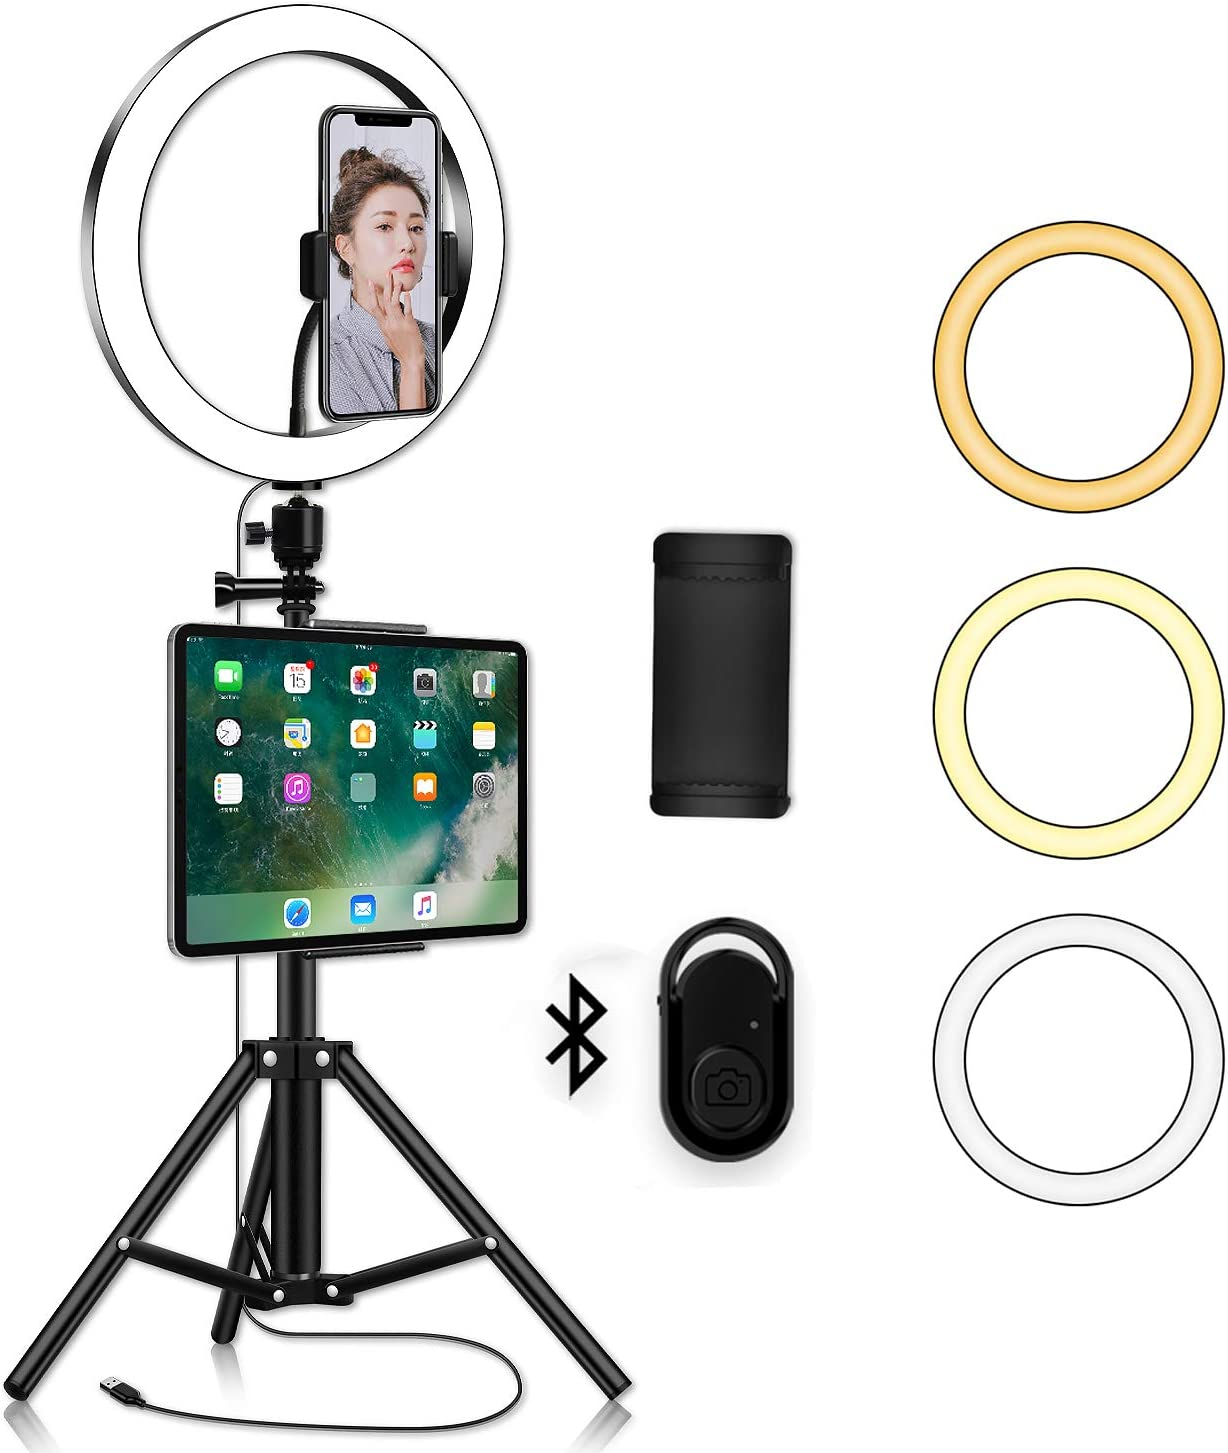 Tmtop LED Ring Light with Tripod Tablet Clip 26cm LED Ring Light Dimmable LED Live Video Ring Light Set with Tripod Stand